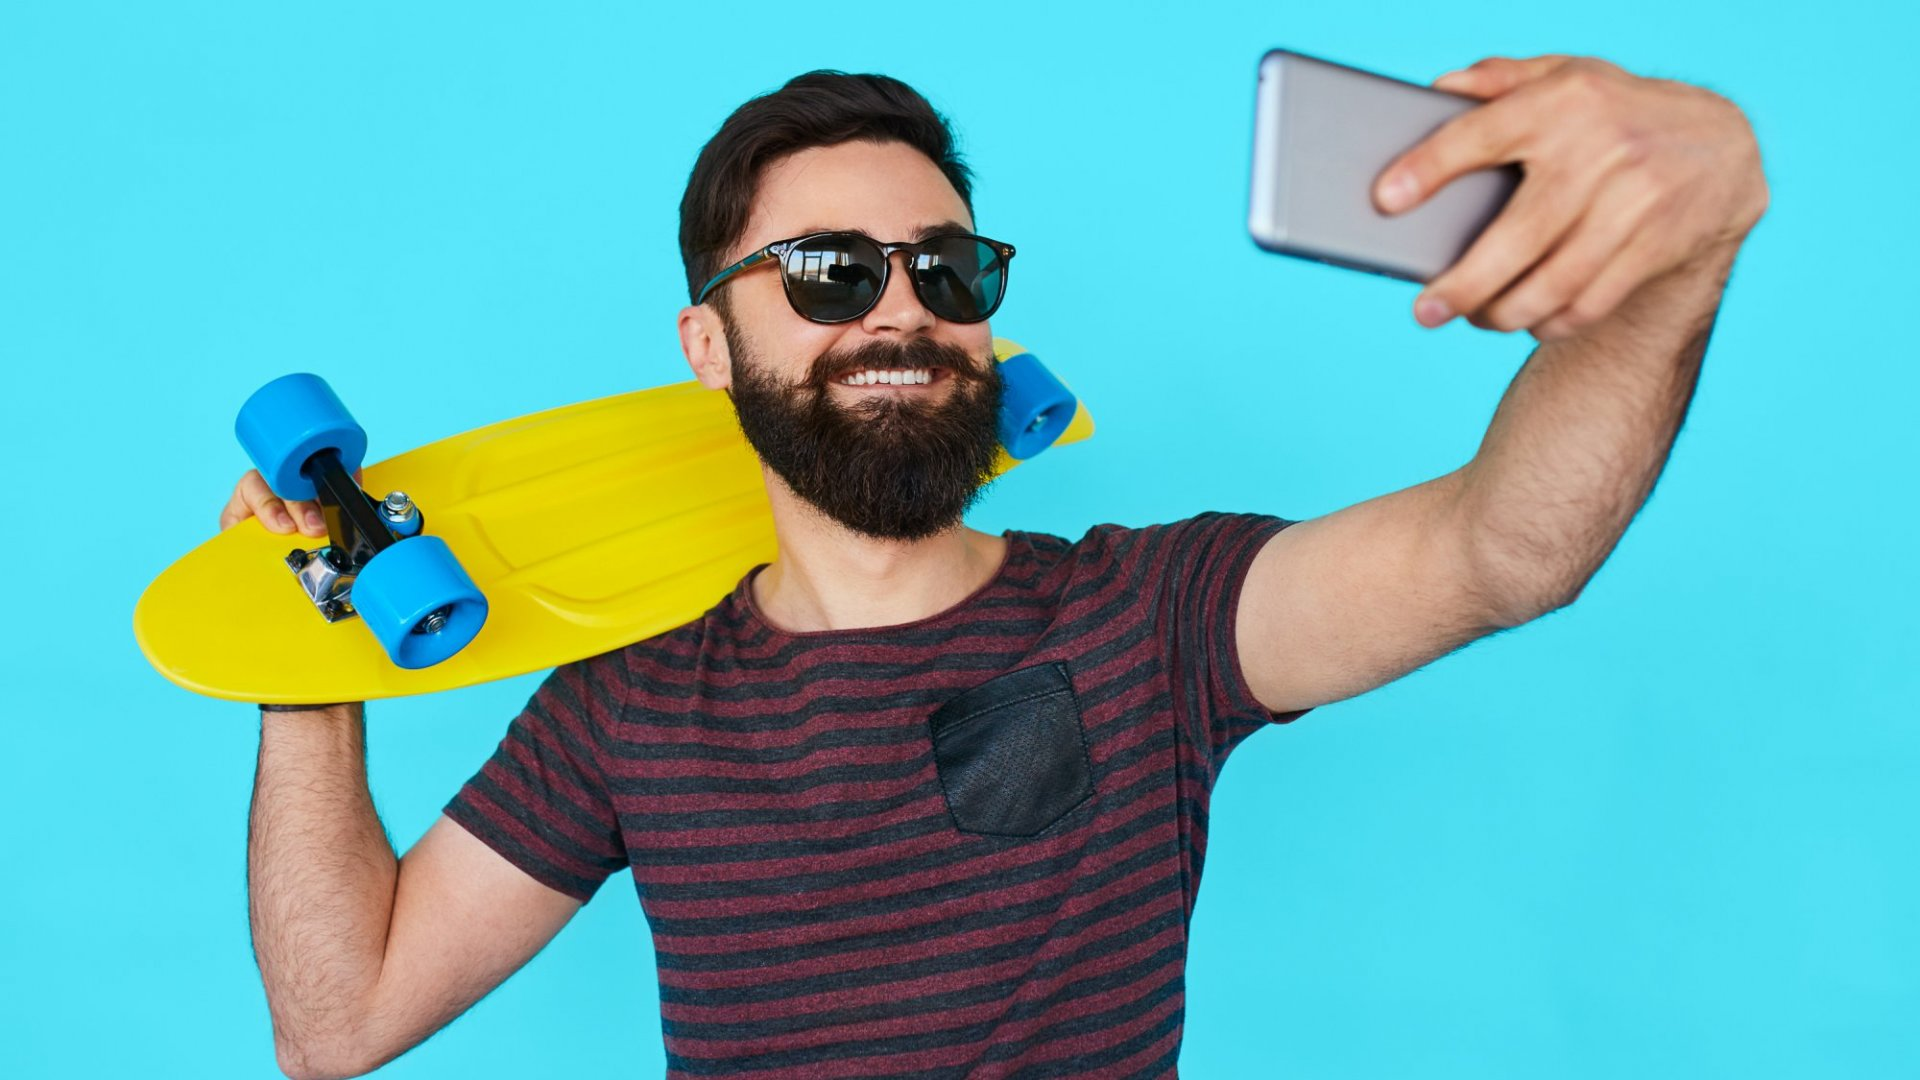 7Types of Profile PicsYou Should Never Post on LinkedIn, According to Recruiters